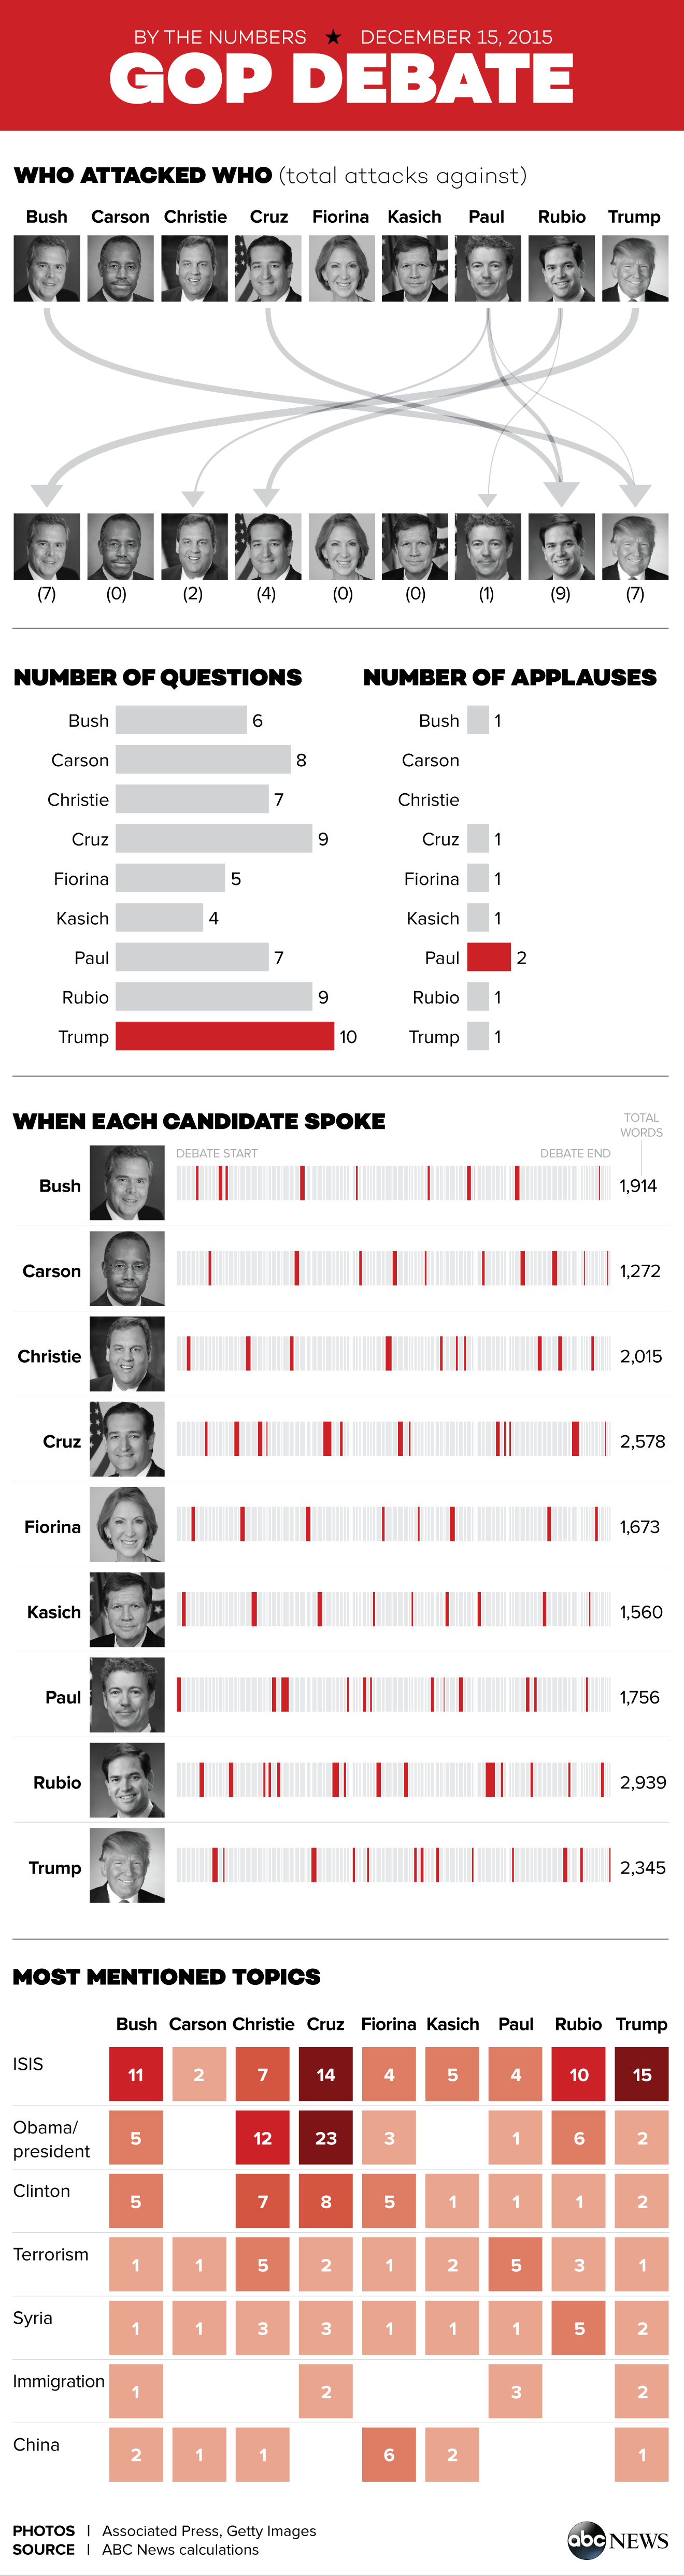 The Fifth Republican Debate by the Numbers - ABC News